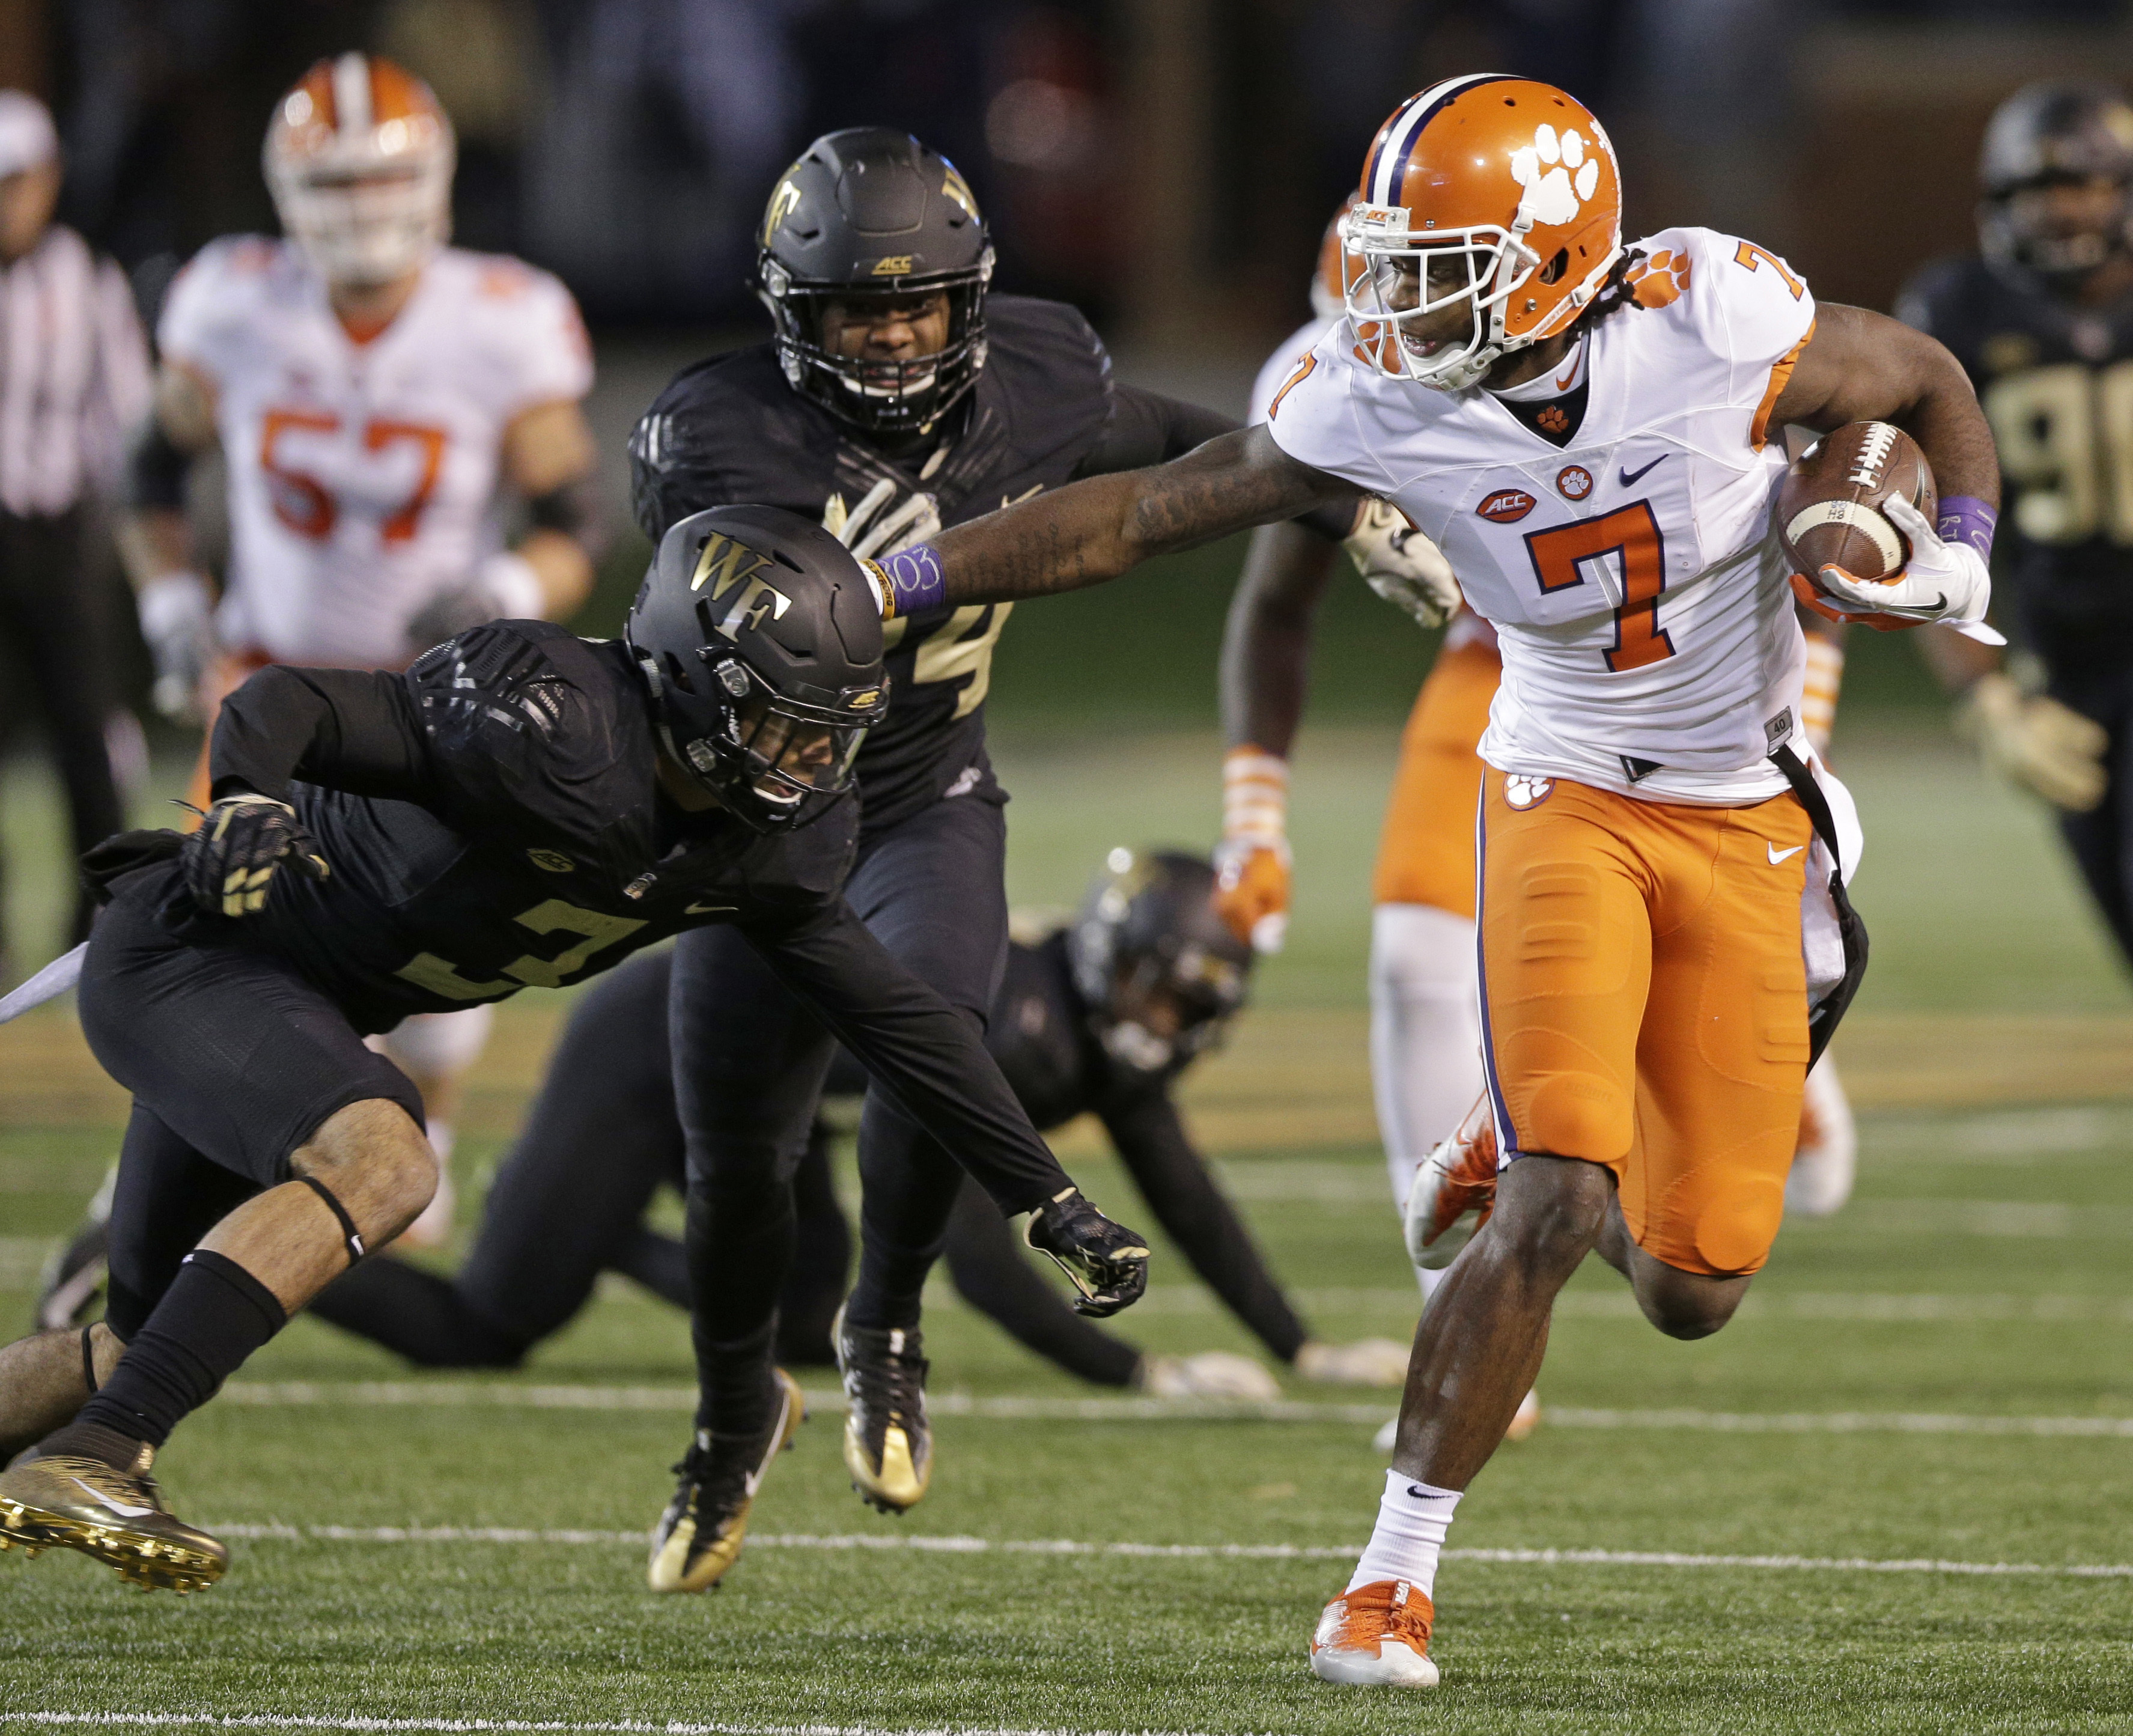 FILE - In a Saturday, Nov. 19, 2016 file photo, Clemson's Mike Williams (7) runs past Wake Forest's Jessie Bates III (3) during the first half of an NCAA college football game in Winston-Salem, N.C. After suffering a broken bone in his neck in 2015 in a c